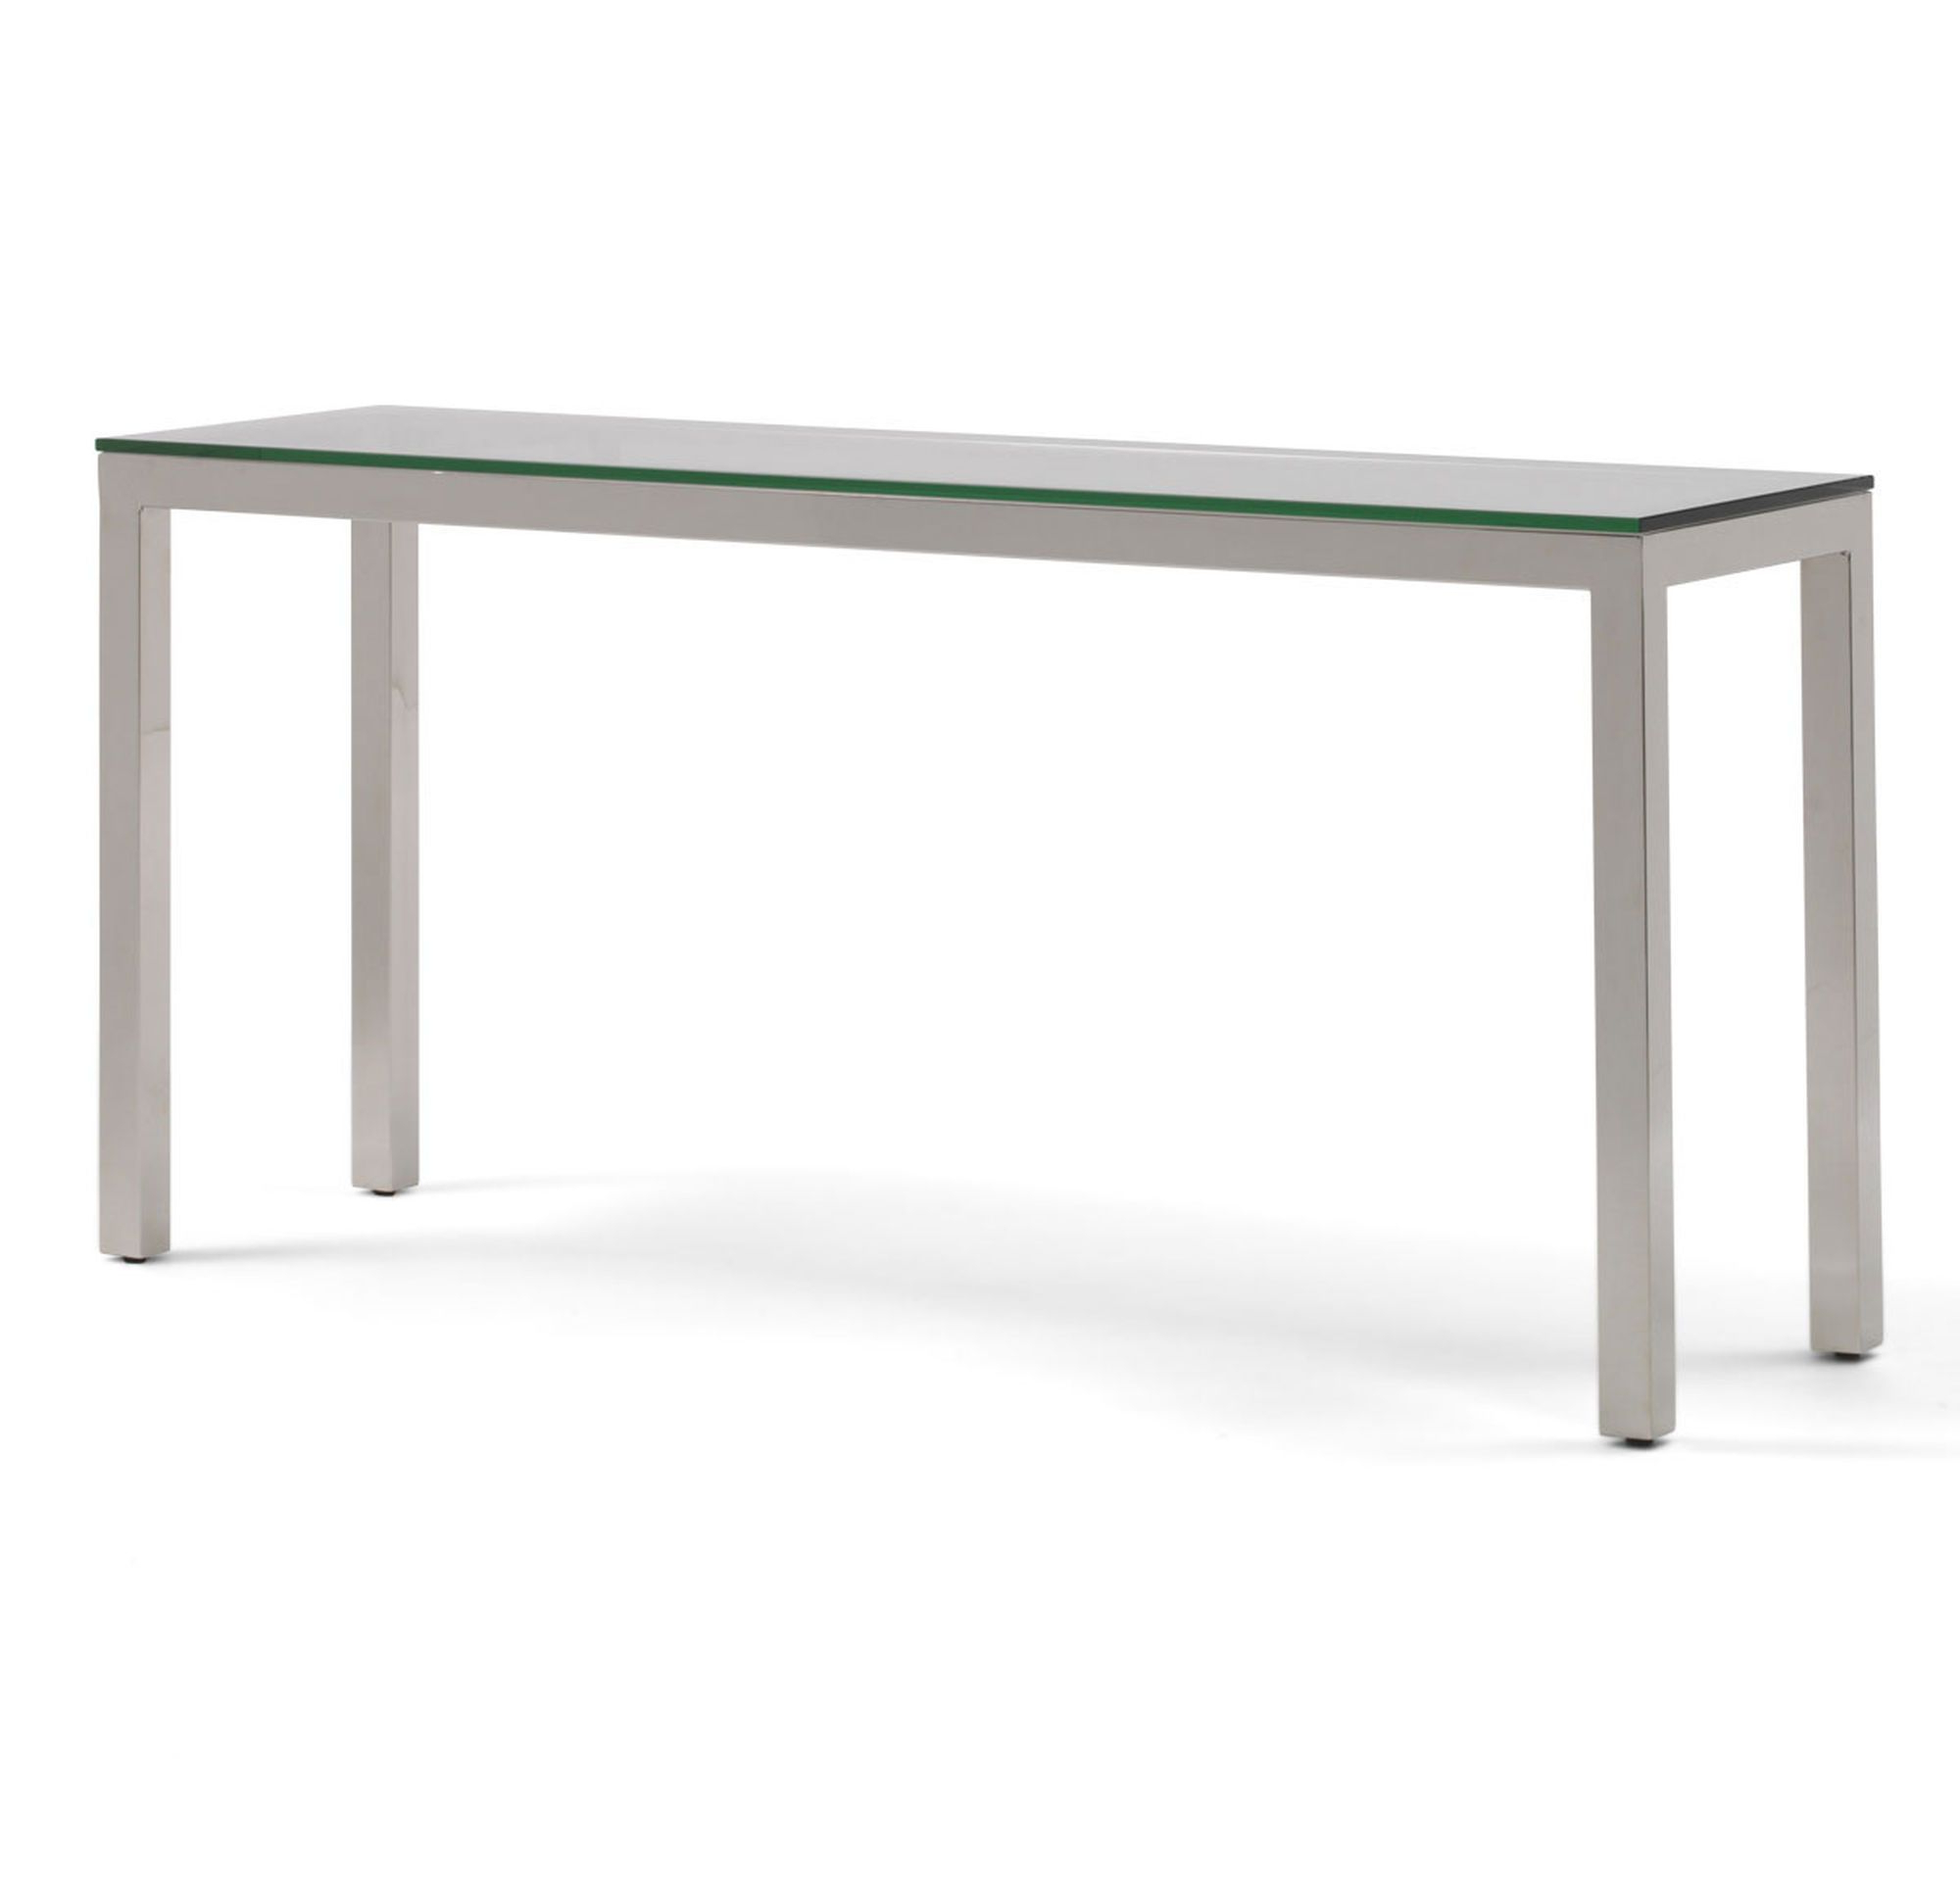 Classic Parsons Console Table – Polished Stainless Steel, , Hi Res In Parsons Clear Glass Top & Brass Base 48x16 Console Tables (View 10 of 20)